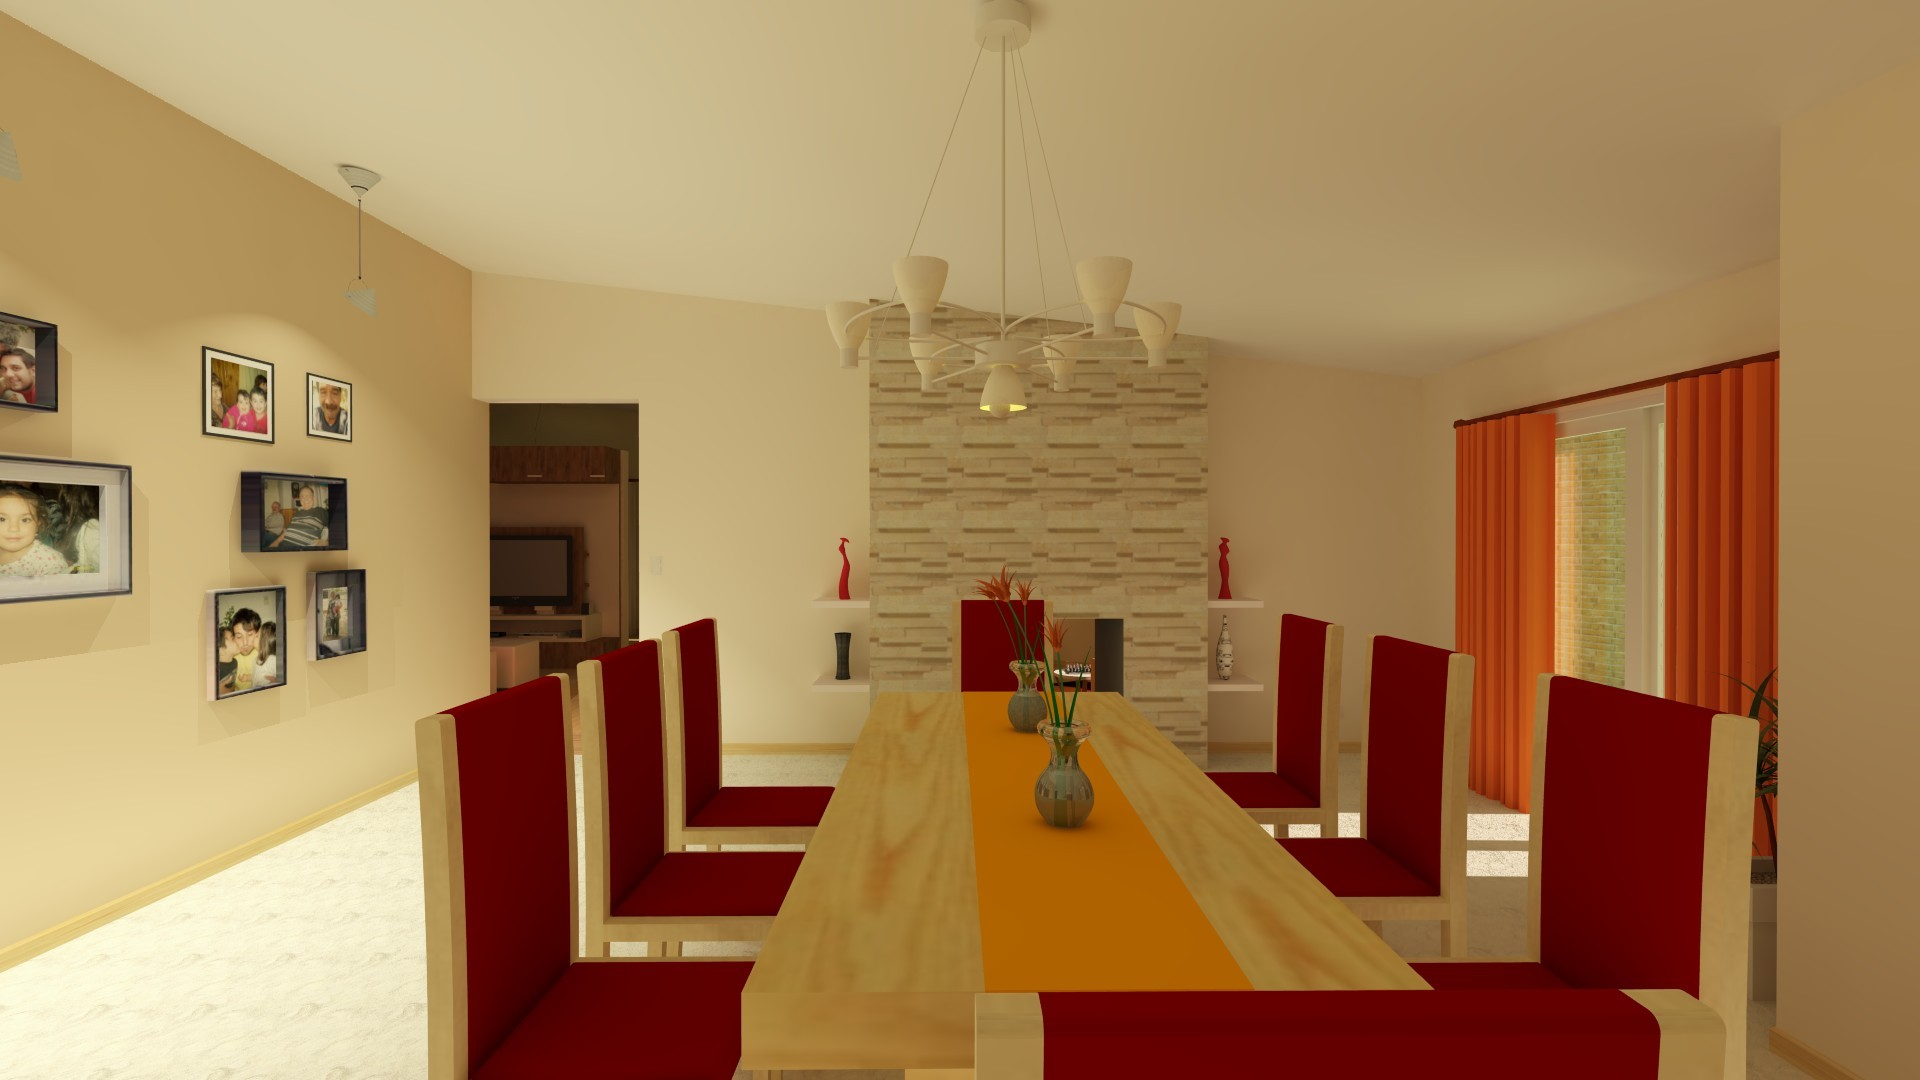 Dise o de interiores estar comedor arte taringa for Diseno de interiores hd